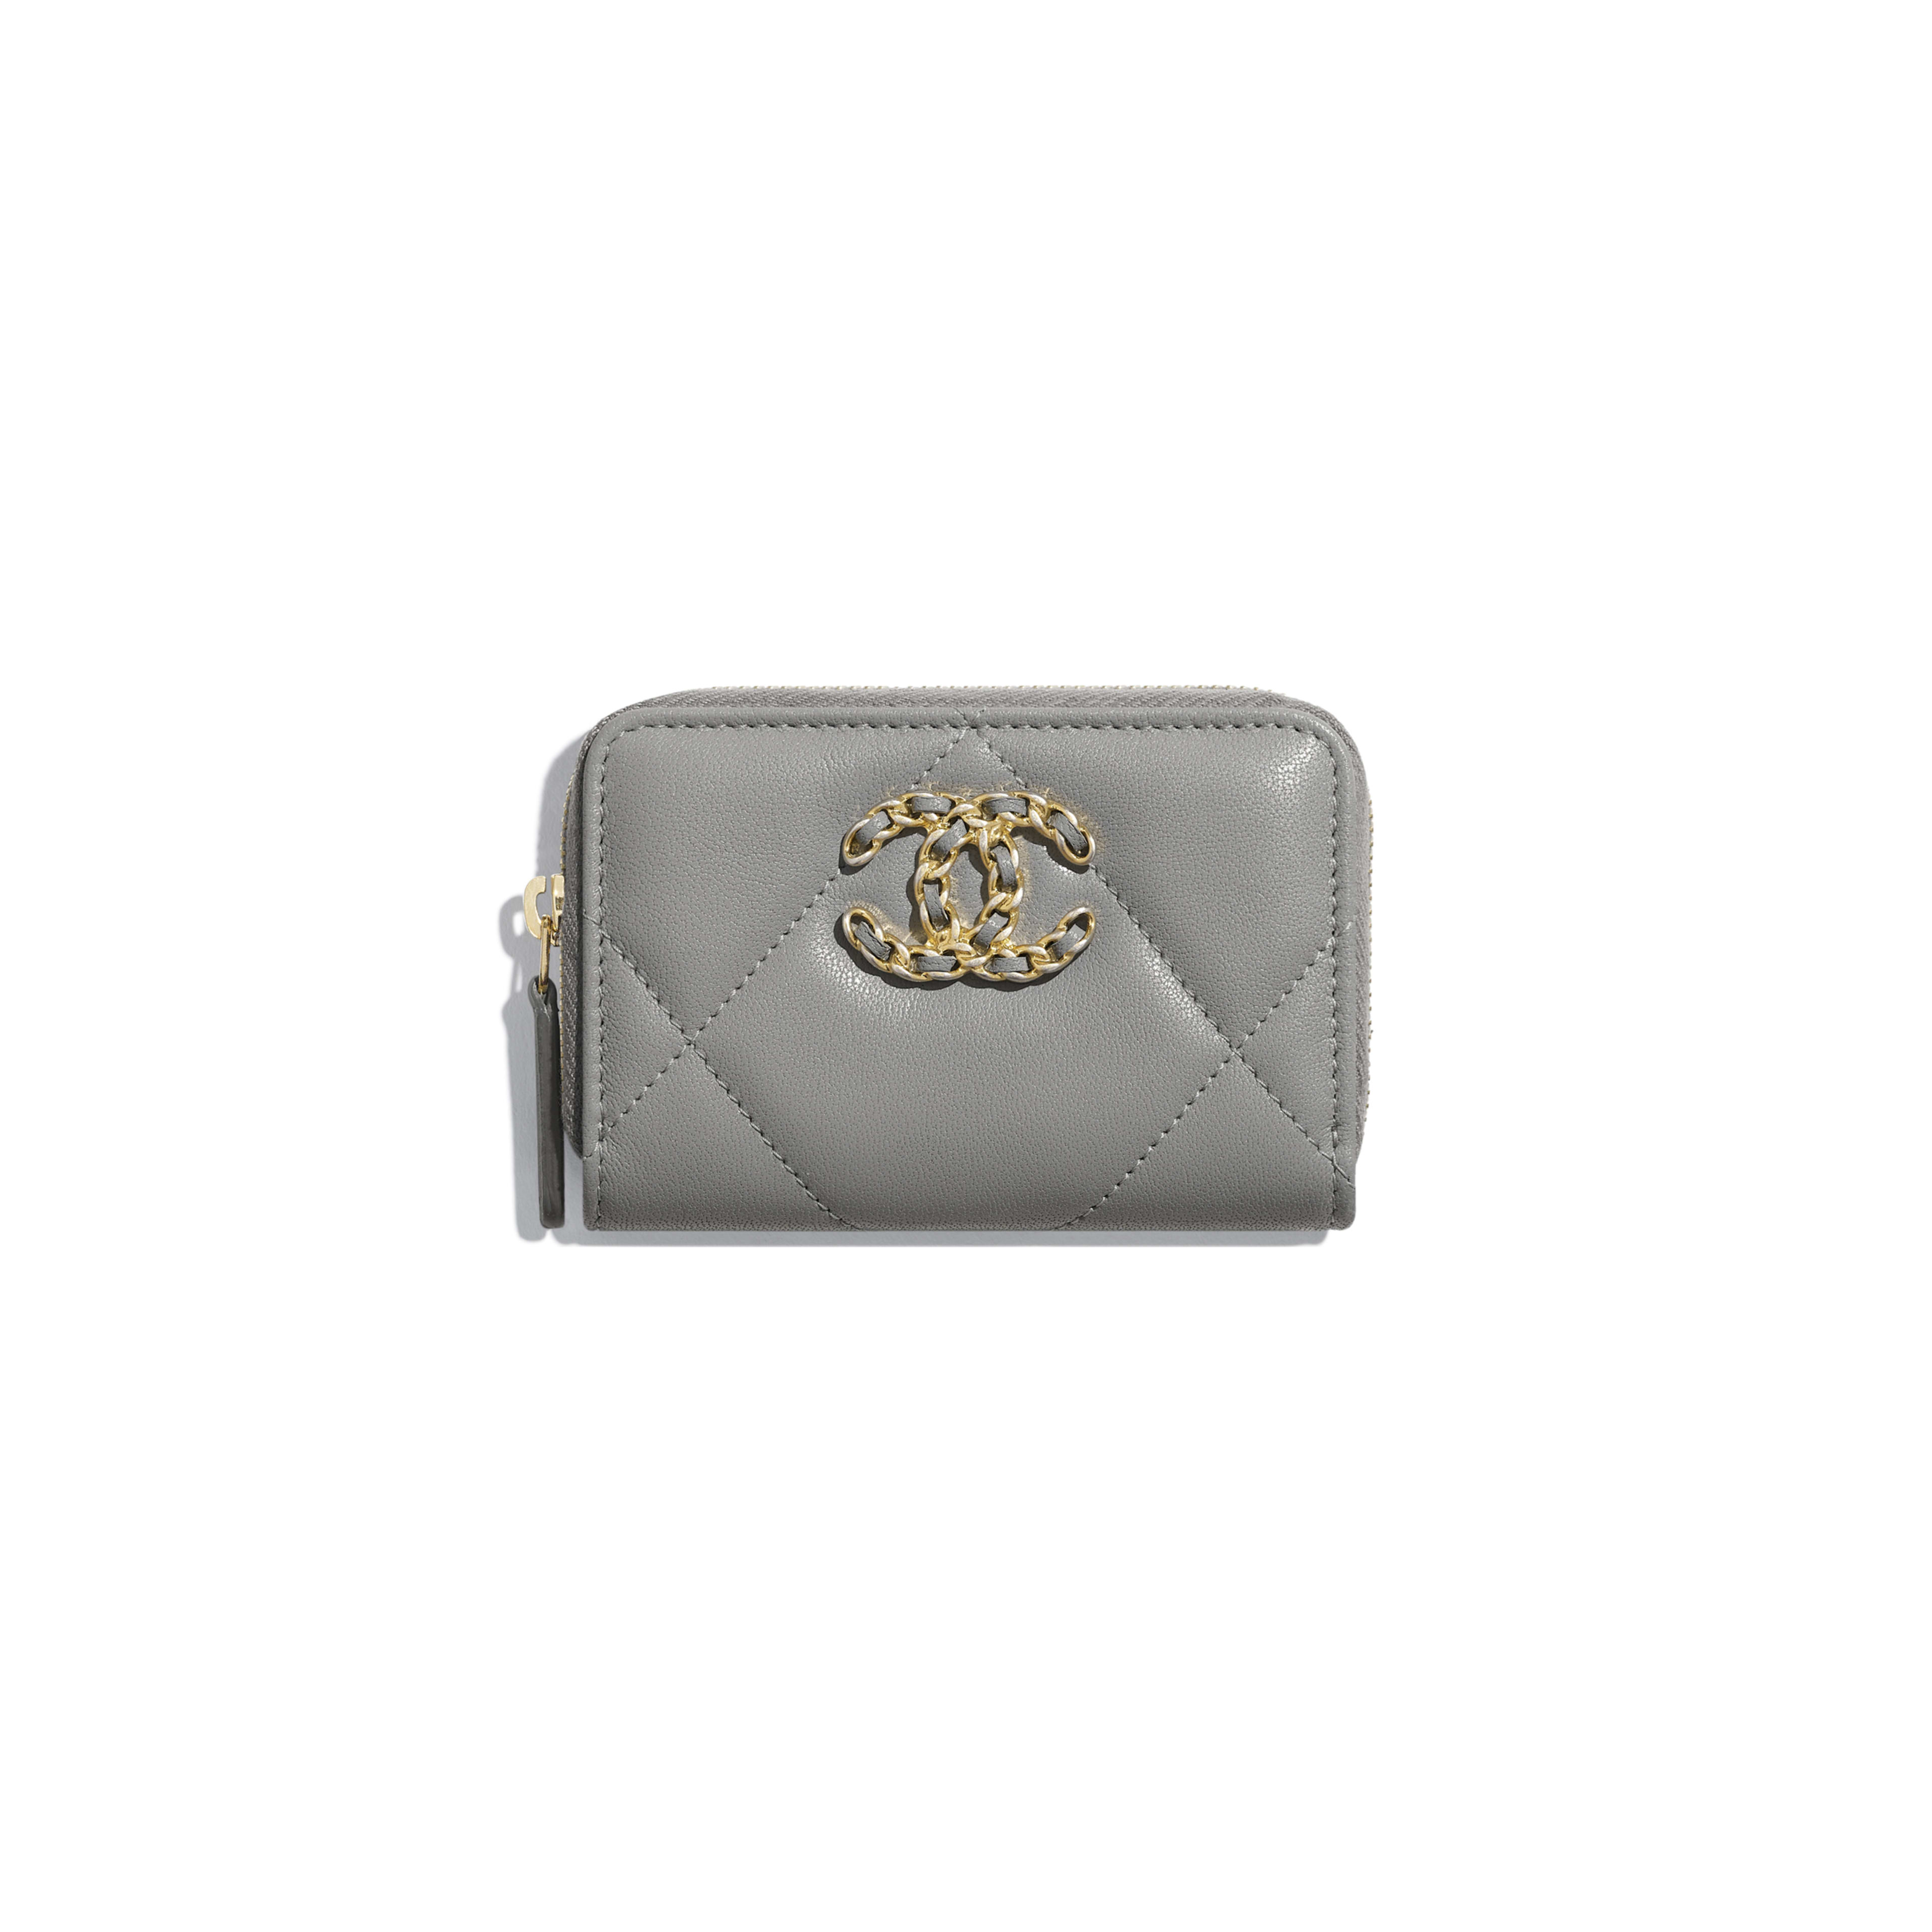 CHANEL 19 Zipped Coin Purse - Grey - Lambskin, Gold-Tone, Silver-Tone & Ruthenium-Finish Metal - Default view - see full sized version